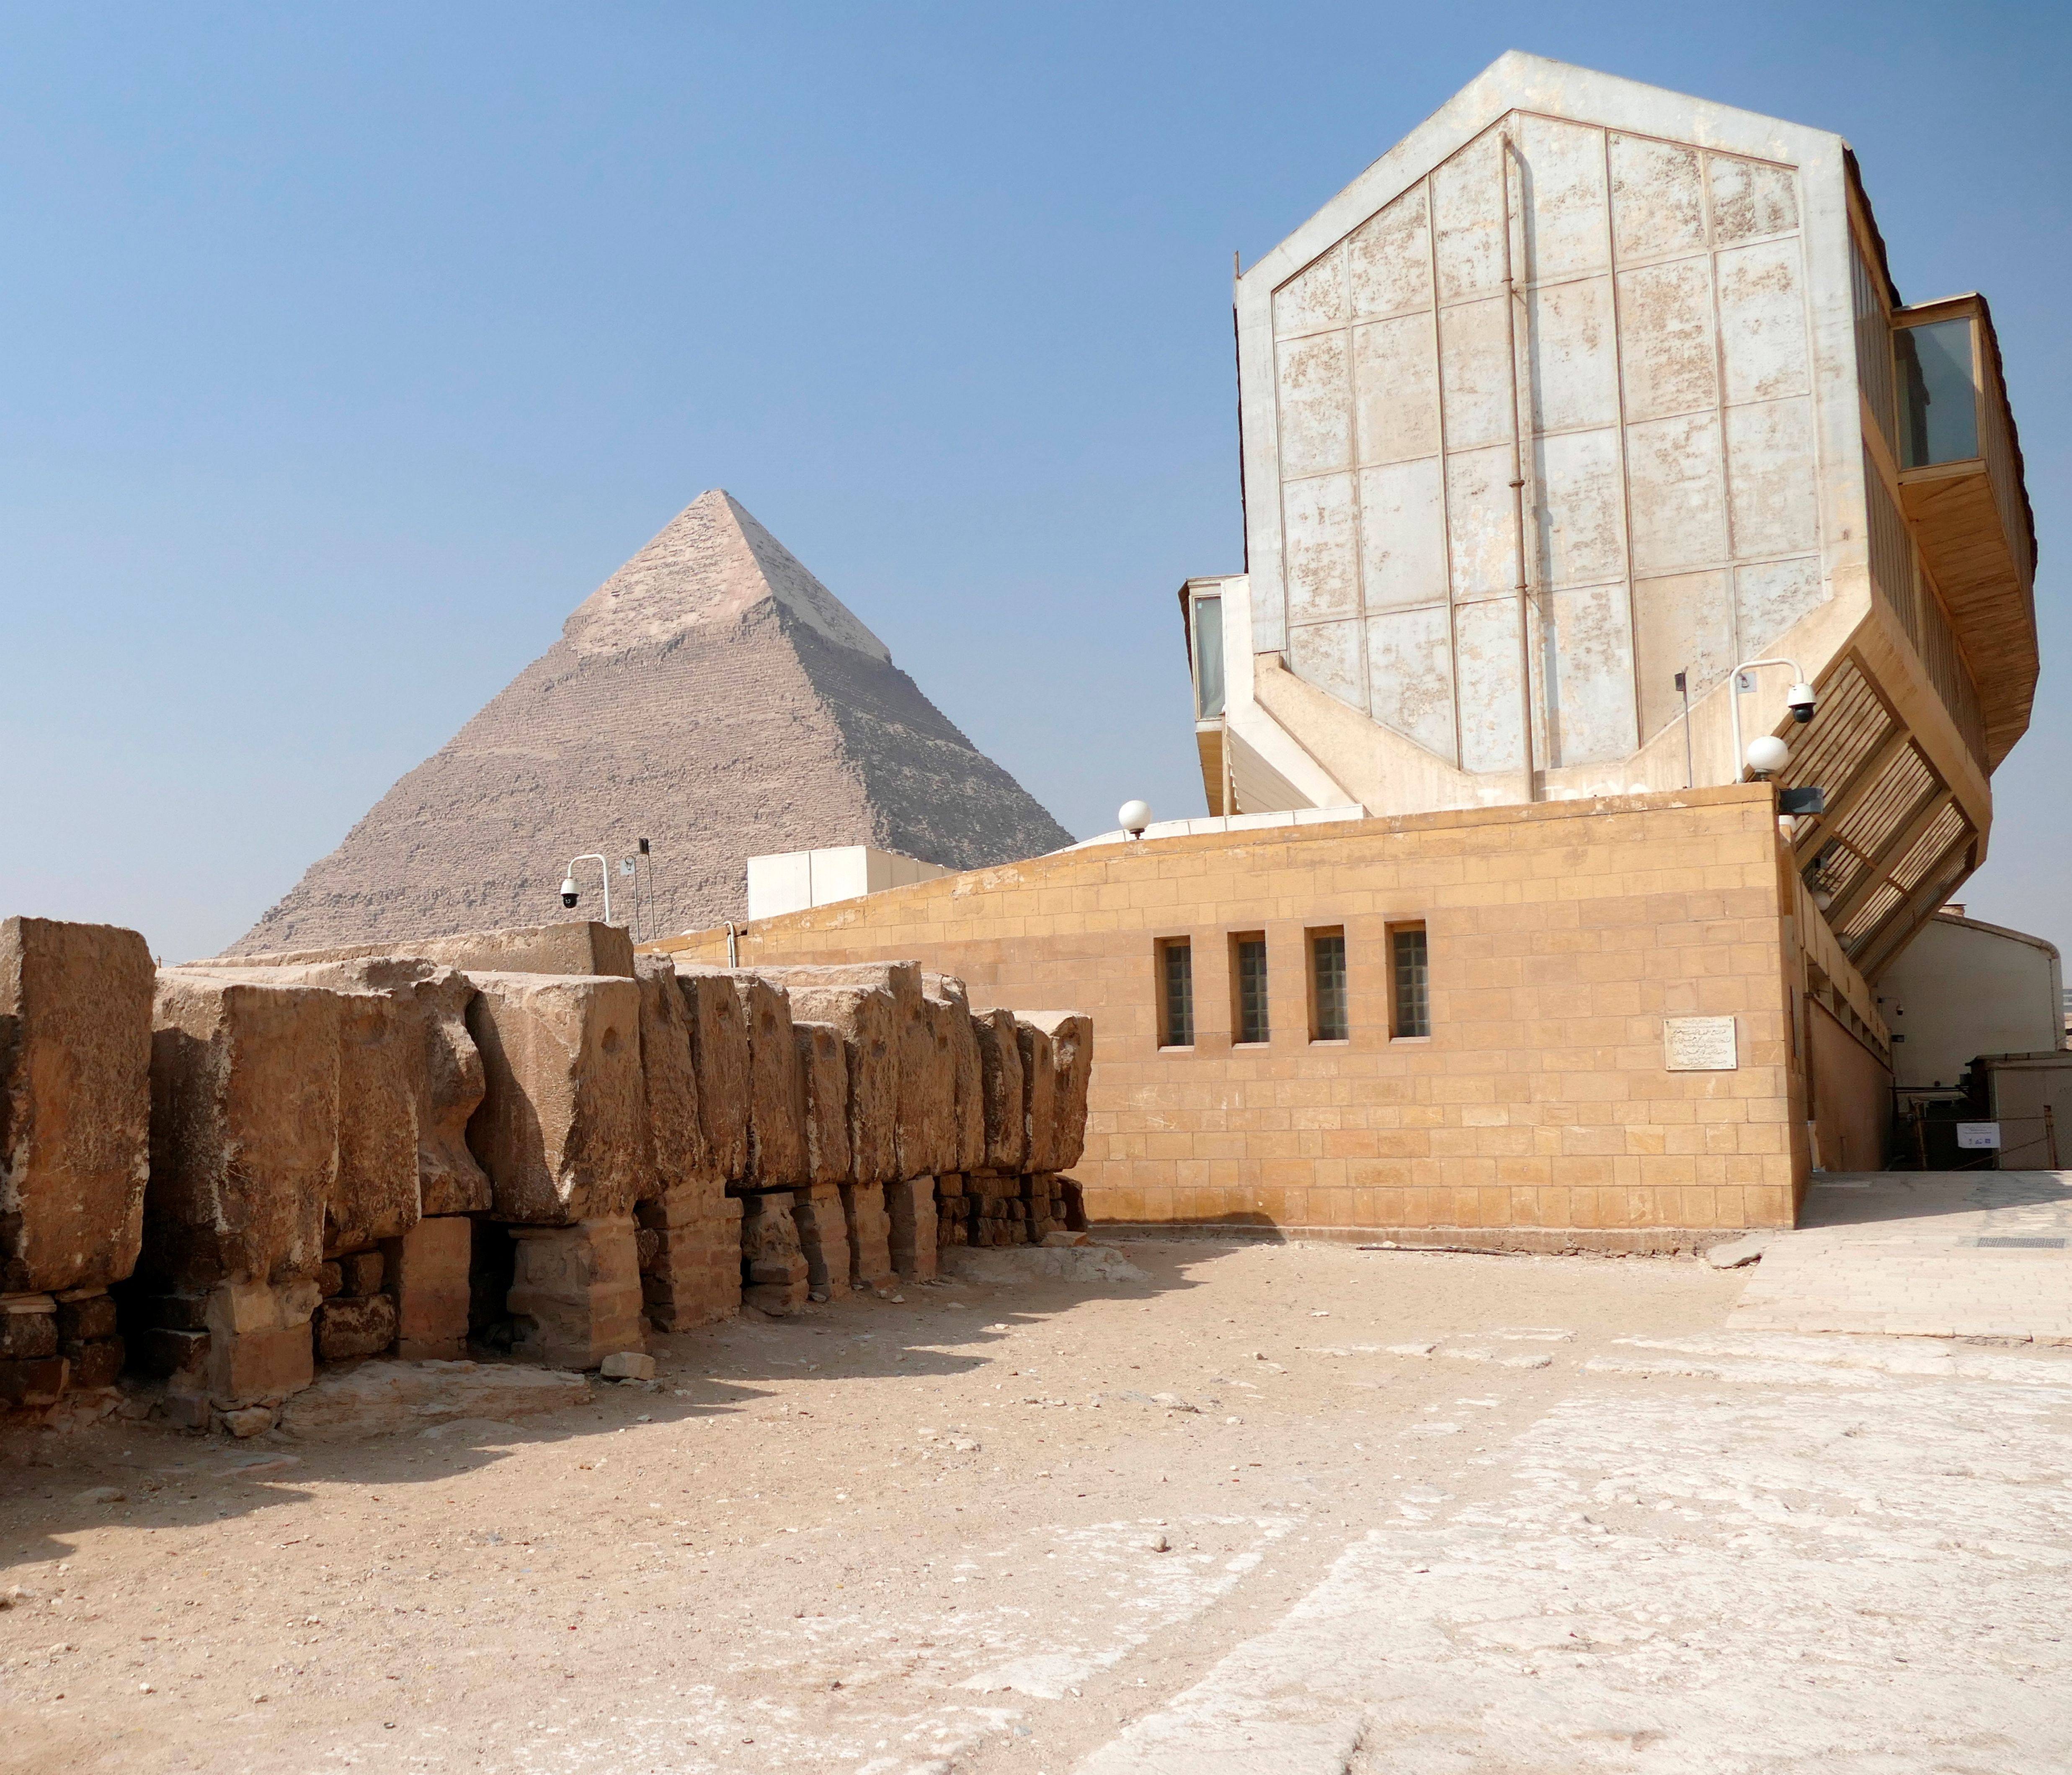 Boat of Ra (Solar Boat) museum next to the Pyramid of Khafre or of Chephren